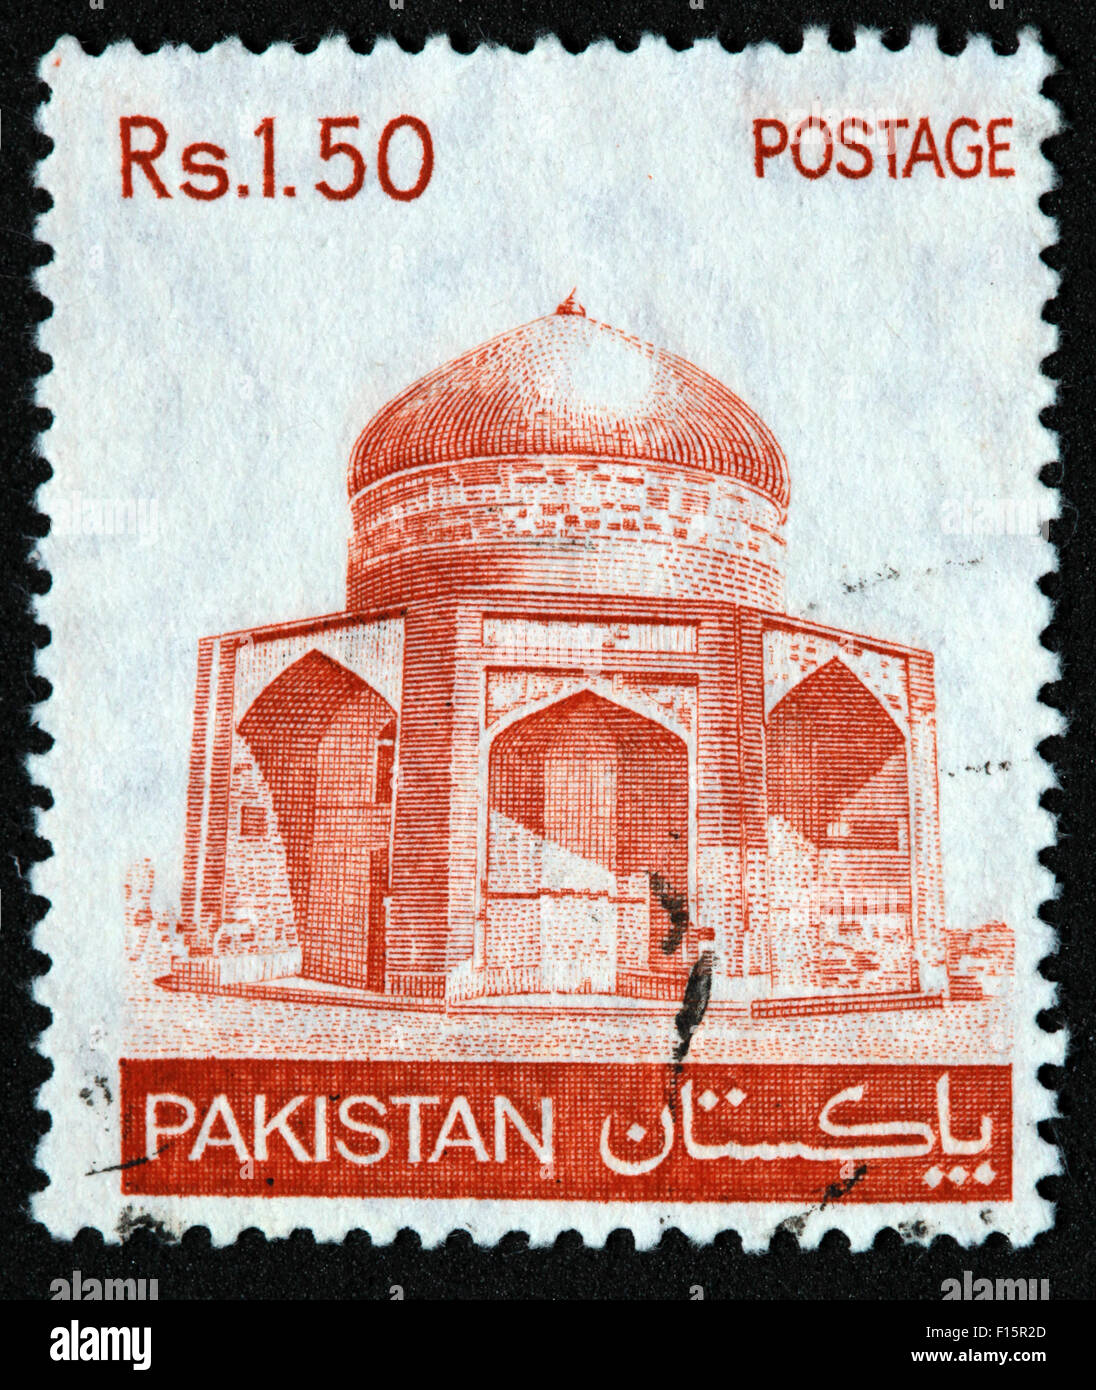 Pakistan Postage Rs1-50 rs brown mosque Stamp Stock Photo